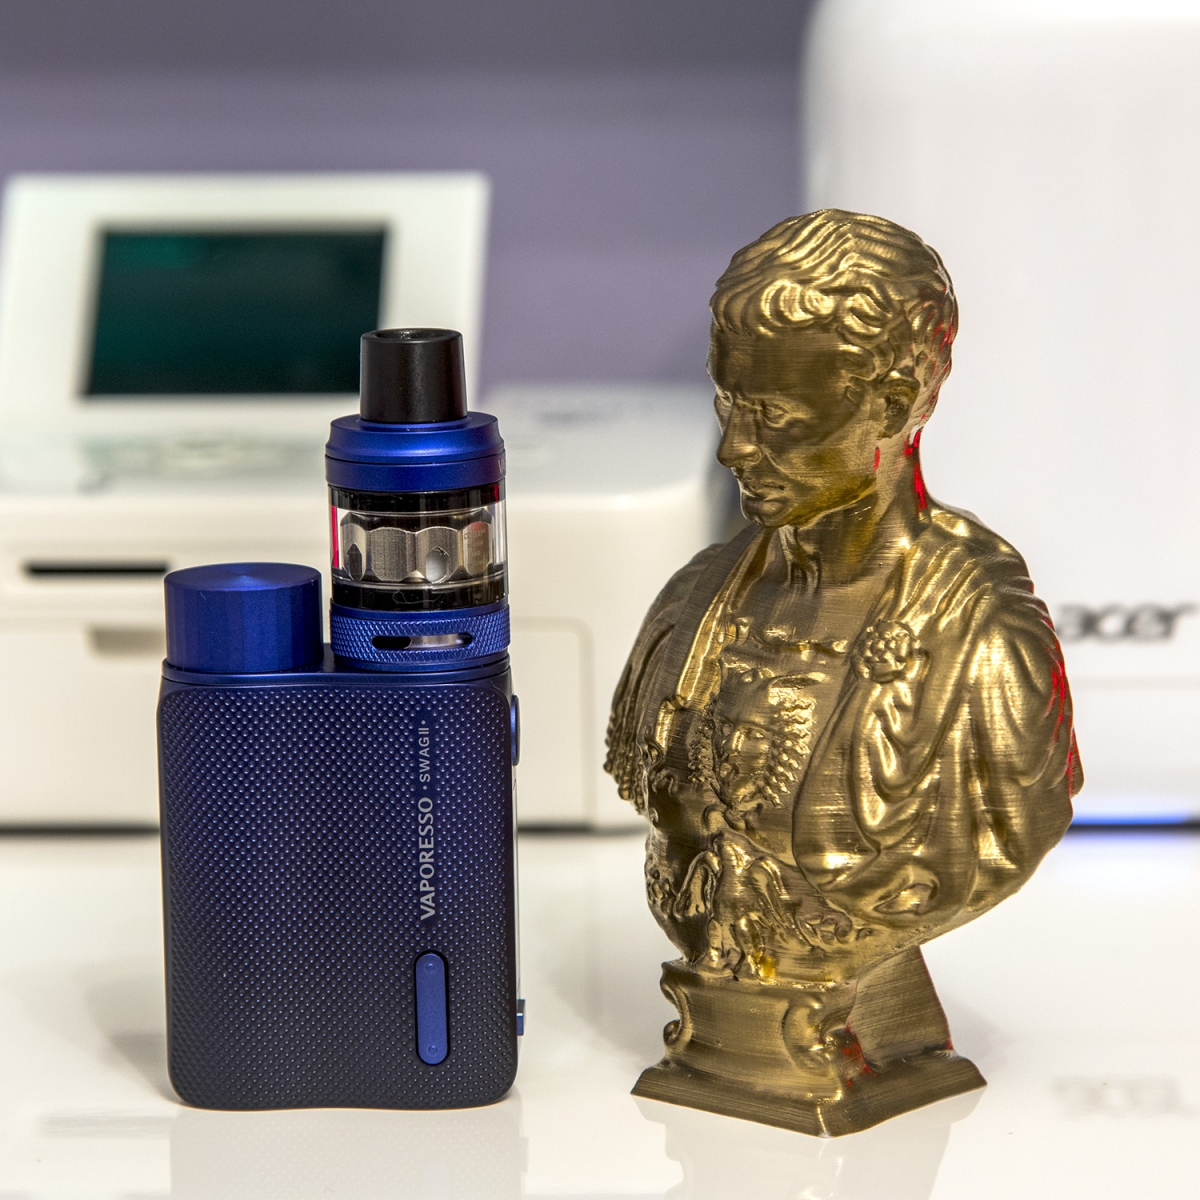 Vaporesso Swag 2 hanging with the masters